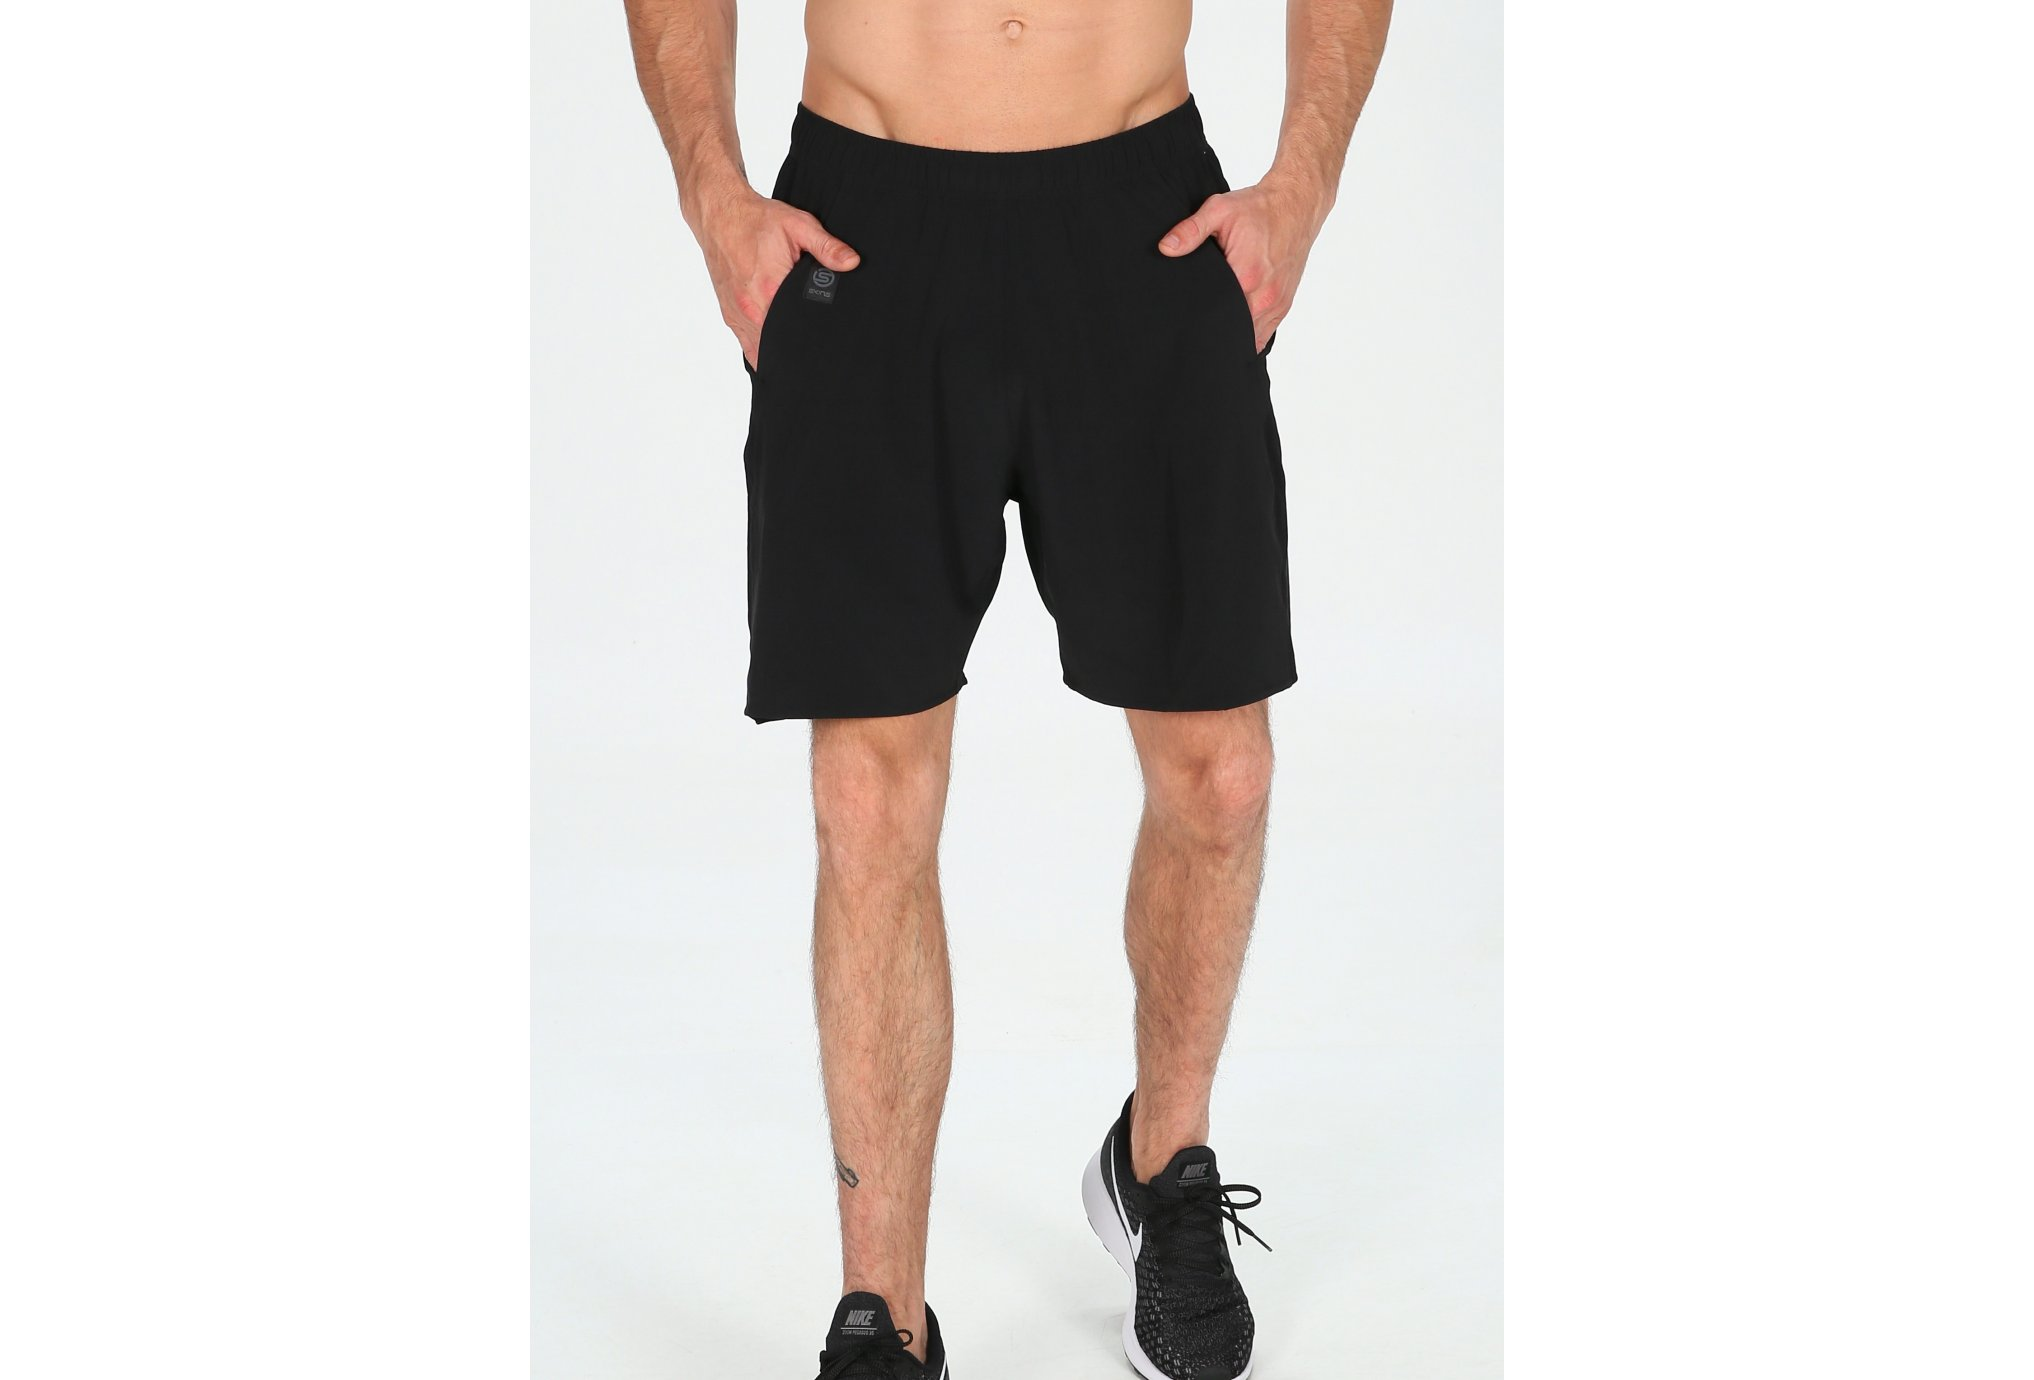 Skins Activewear Square M vêtement running homme